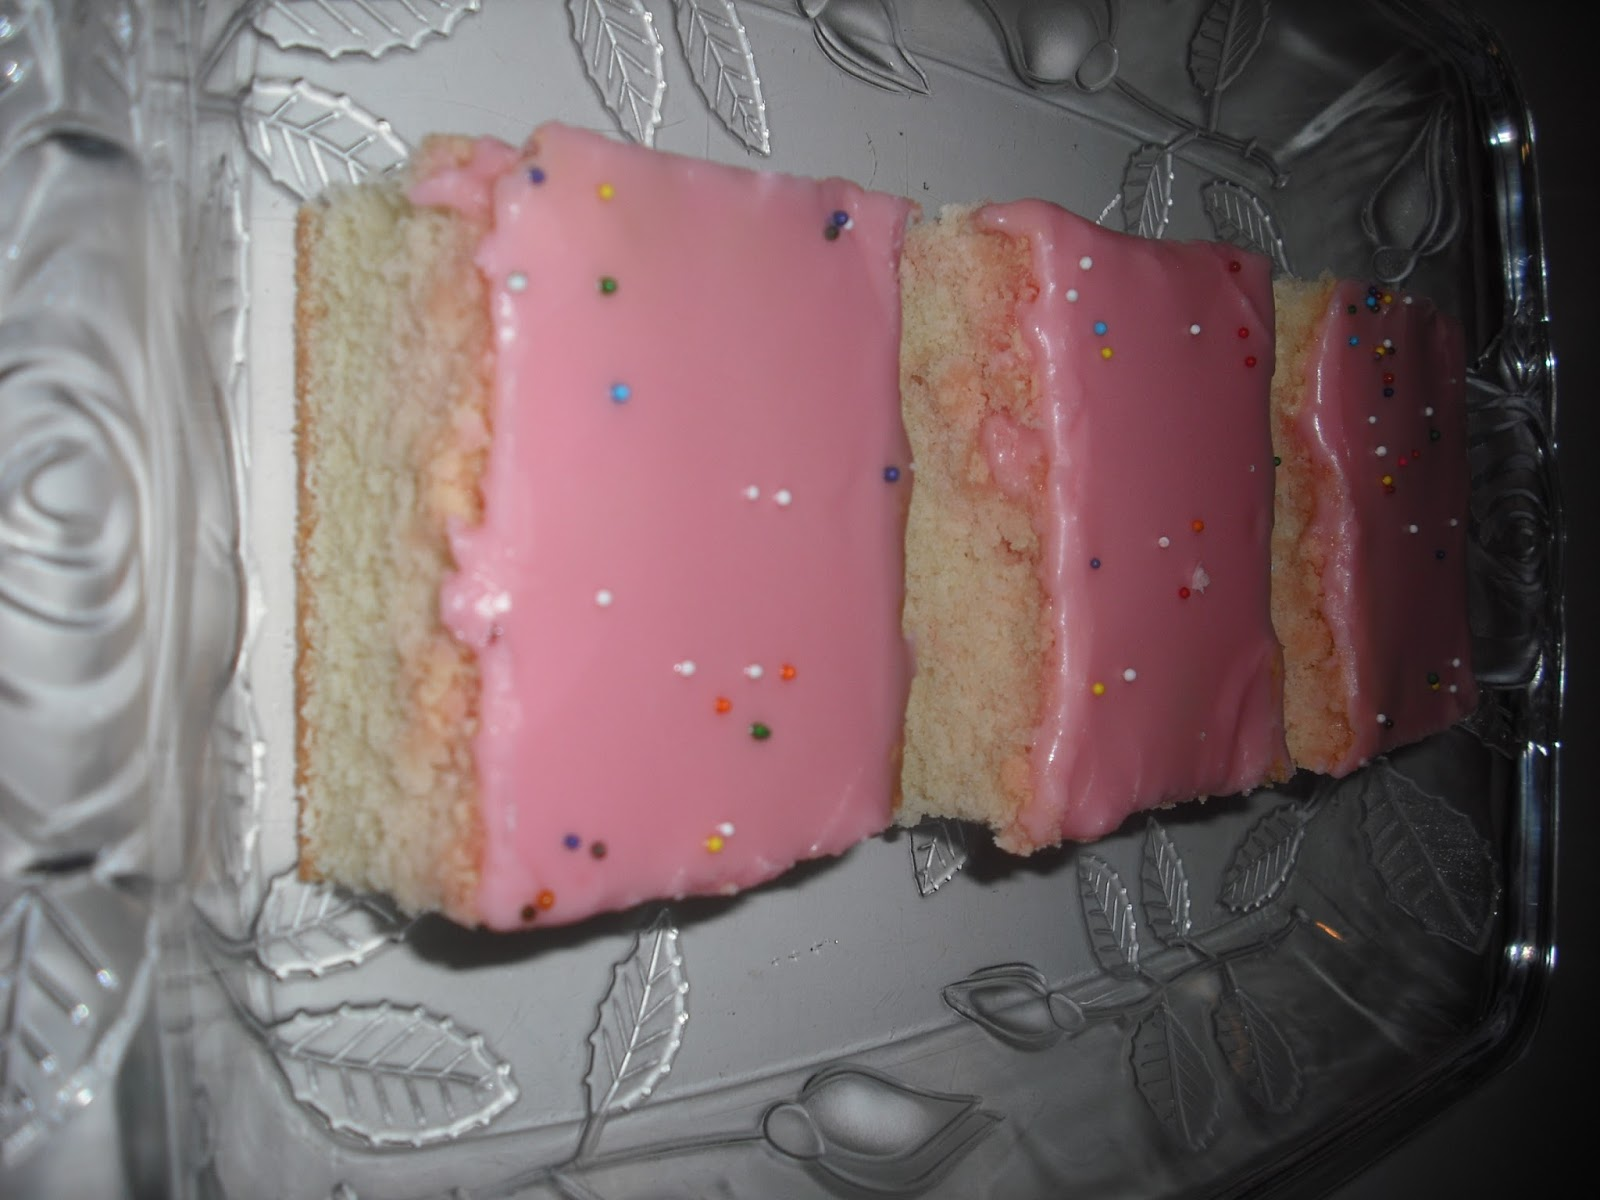 Recipe Marketing Snack Cake With Pink Icing